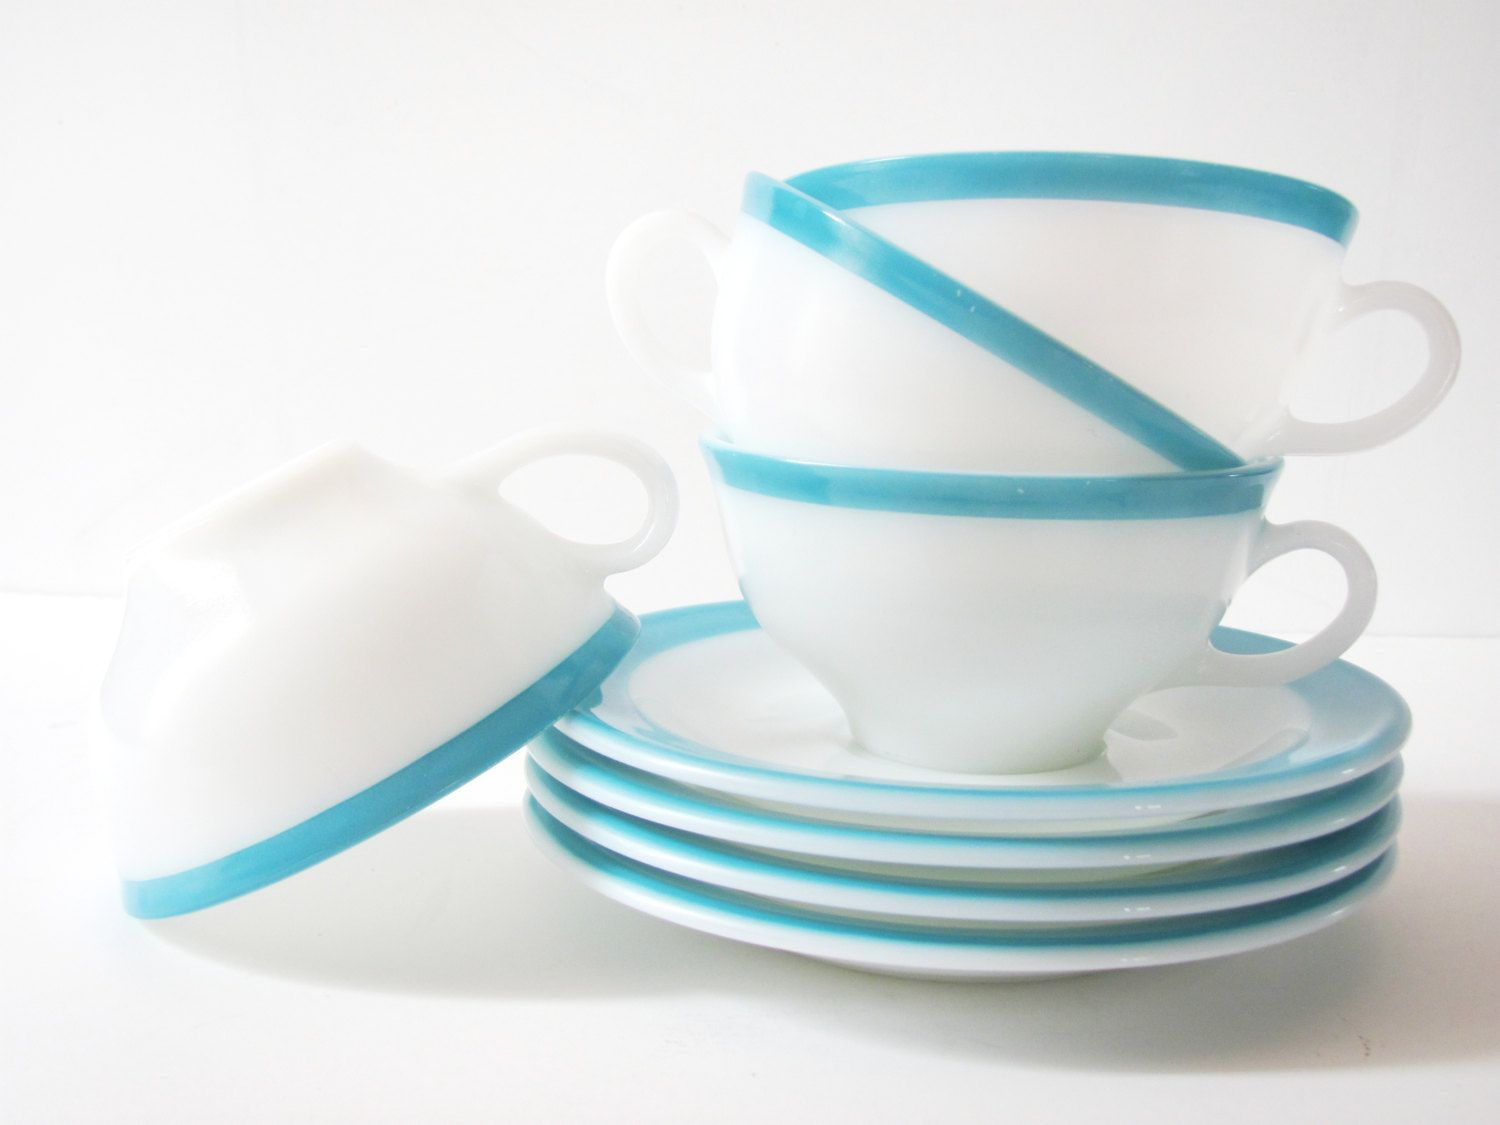 Set of 4 Vintage Pyrex Turquoise Blue and White Tea Cups and Saucers ...